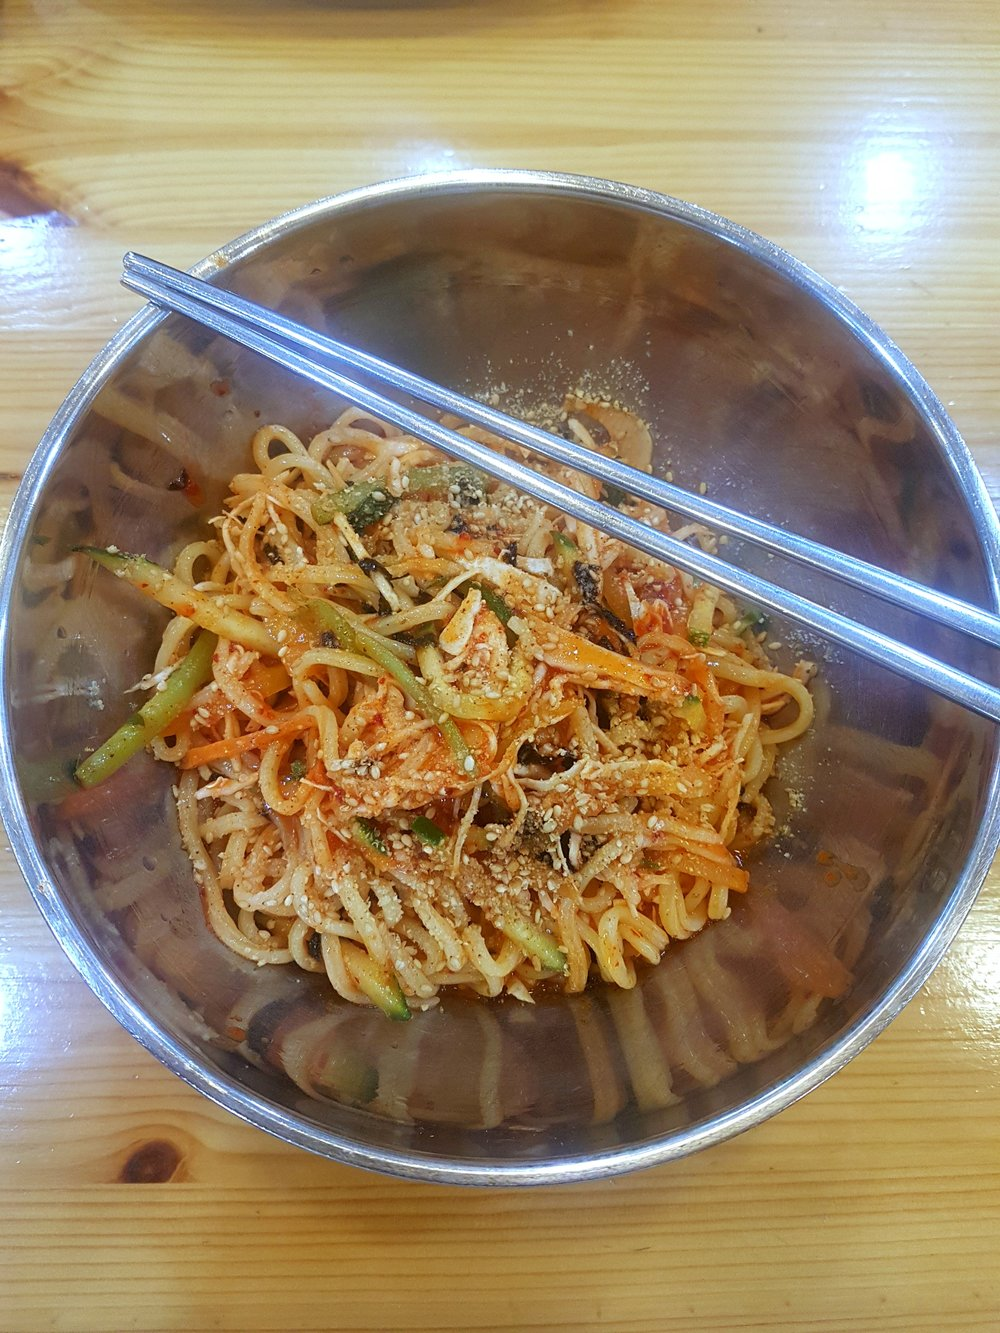 Spicy noodles. I will be spoiled. :D